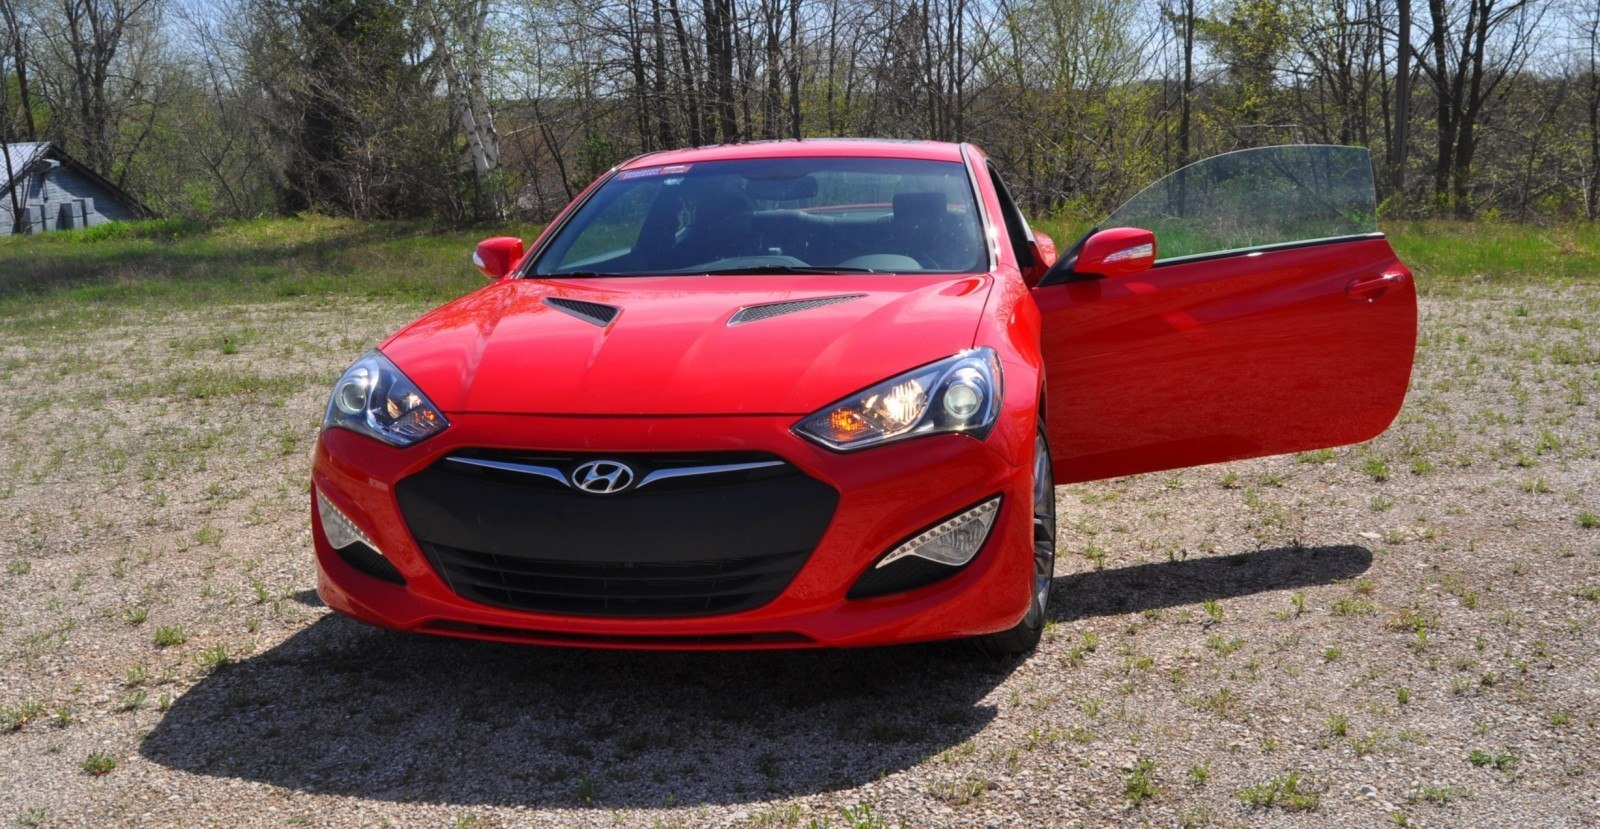 2014 hyundai genesis coupe 3 8l v6 r spec road test review of fast and fun rwd sportscar 15. Black Bedroom Furniture Sets. Home Design Ideas